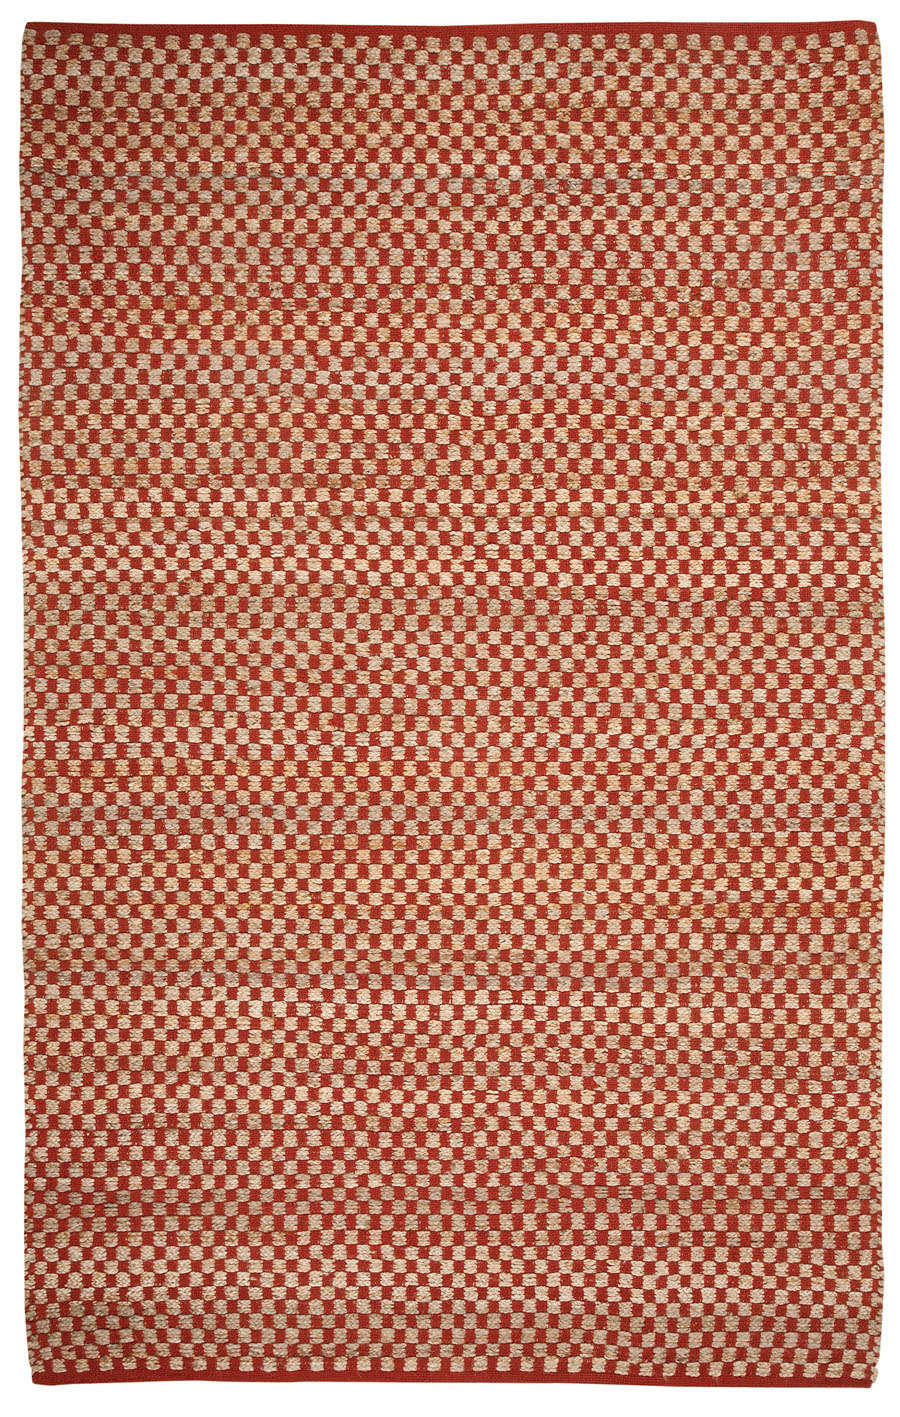 Capel checkered 6507 850 clay area rug payless rugs checkered collection by capel capel - Checkerboard area rug ...